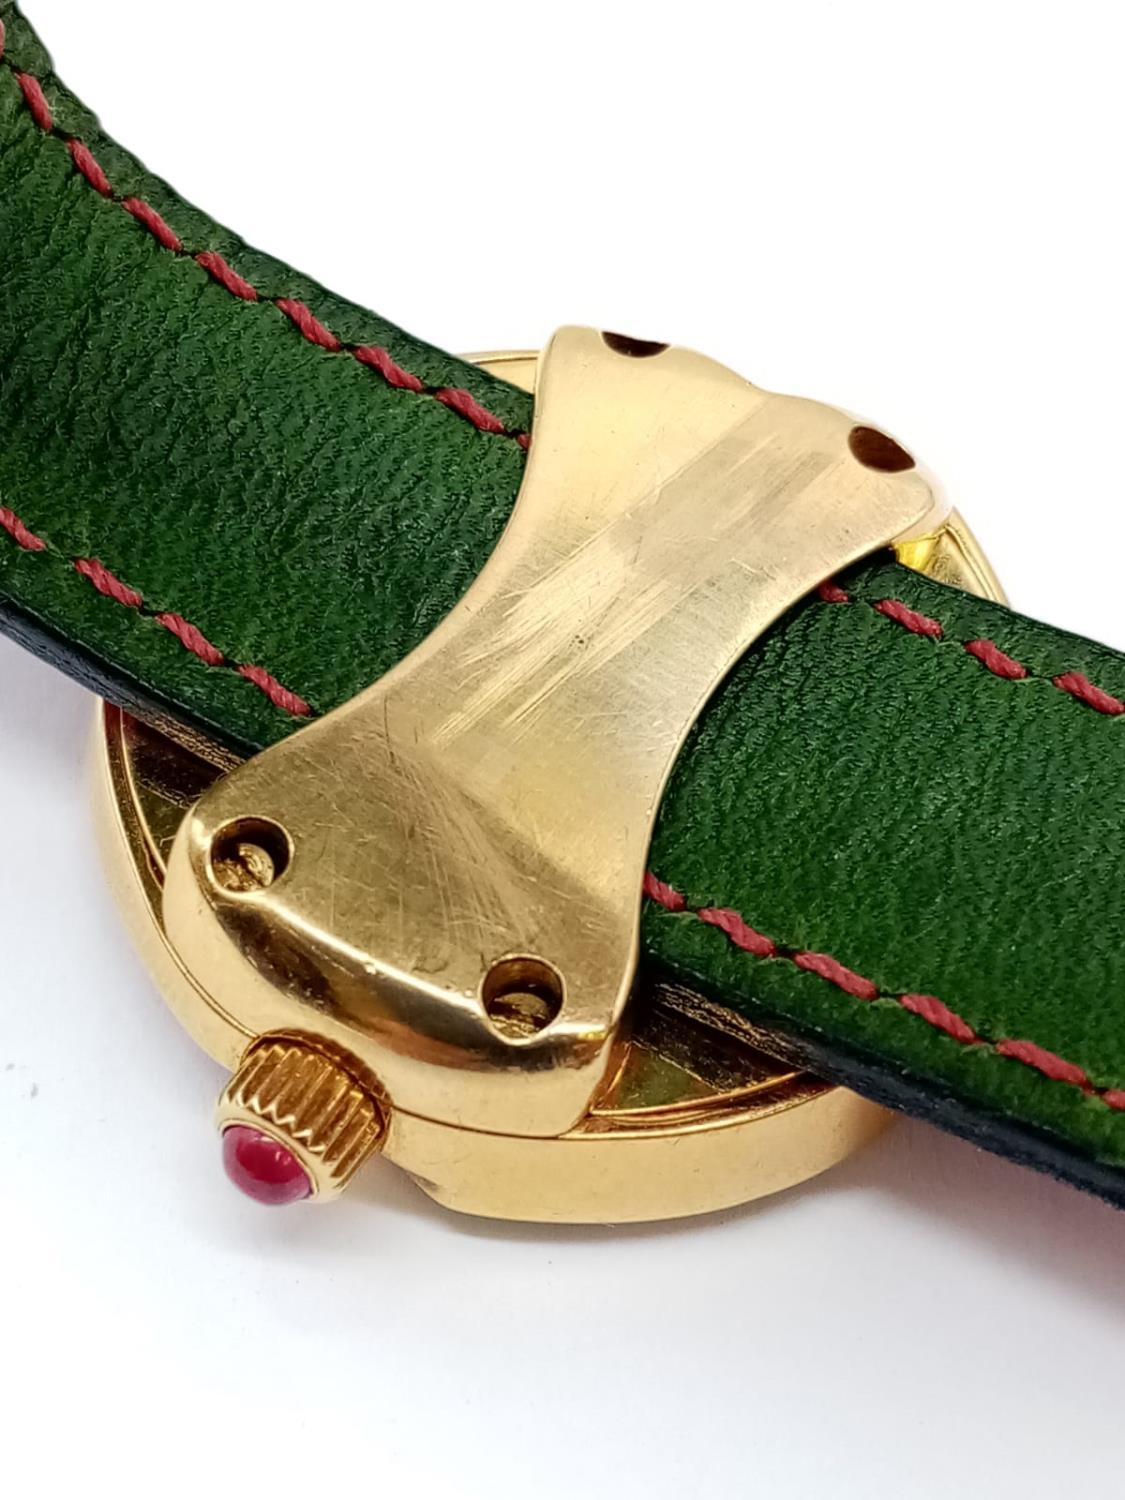 Vintage Bouquet 18ct gold ladies dress watch, round face with emerald, ruby and diamonds surround, - Image 5 of 9